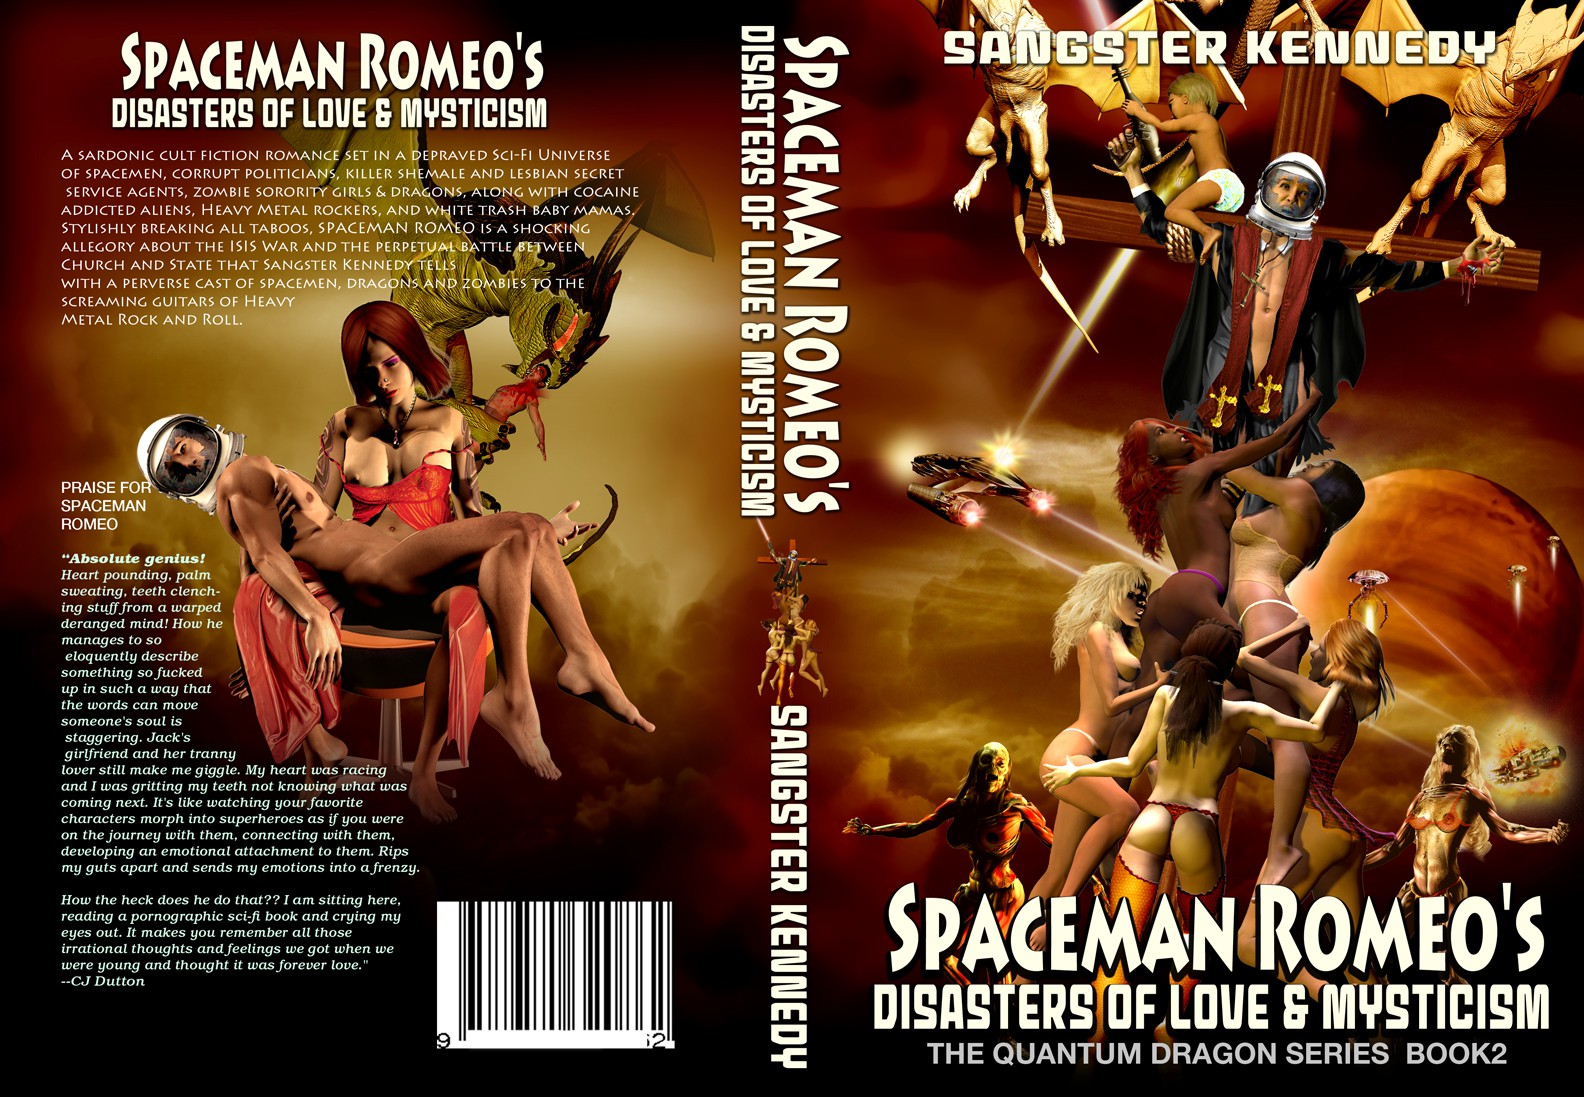 Sci Fi Illustration Featuring Spaceman with Cracked Helmet, Suspended On Cross Flying on Dragons Sexy Woman On Top of Sp